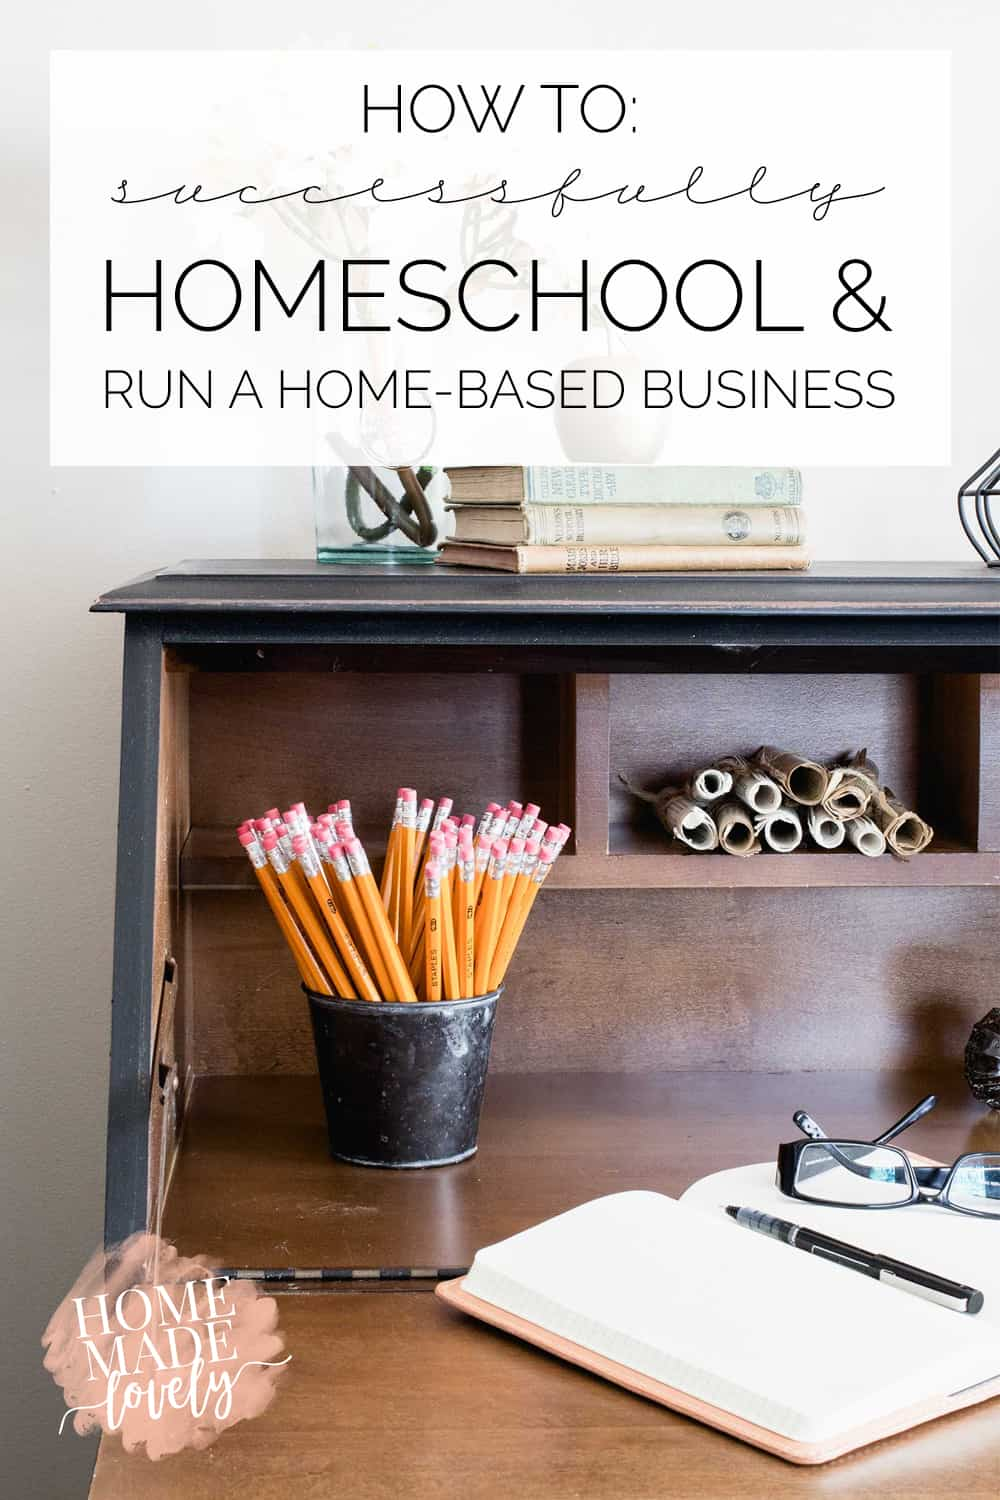 How to Successfully Homeschool and Run a Home-Based Business